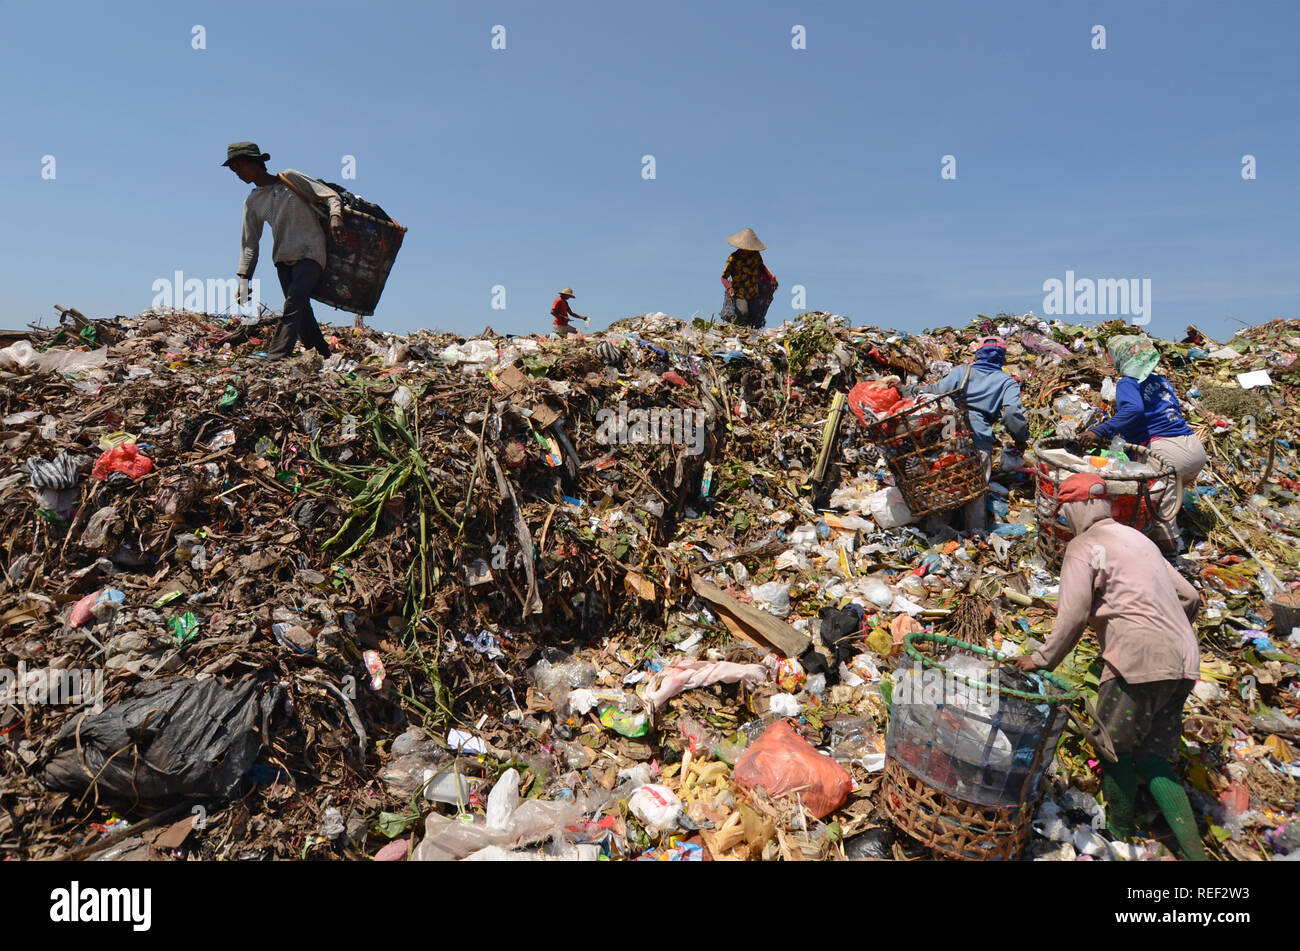 Workers at the landfill - Stock Image